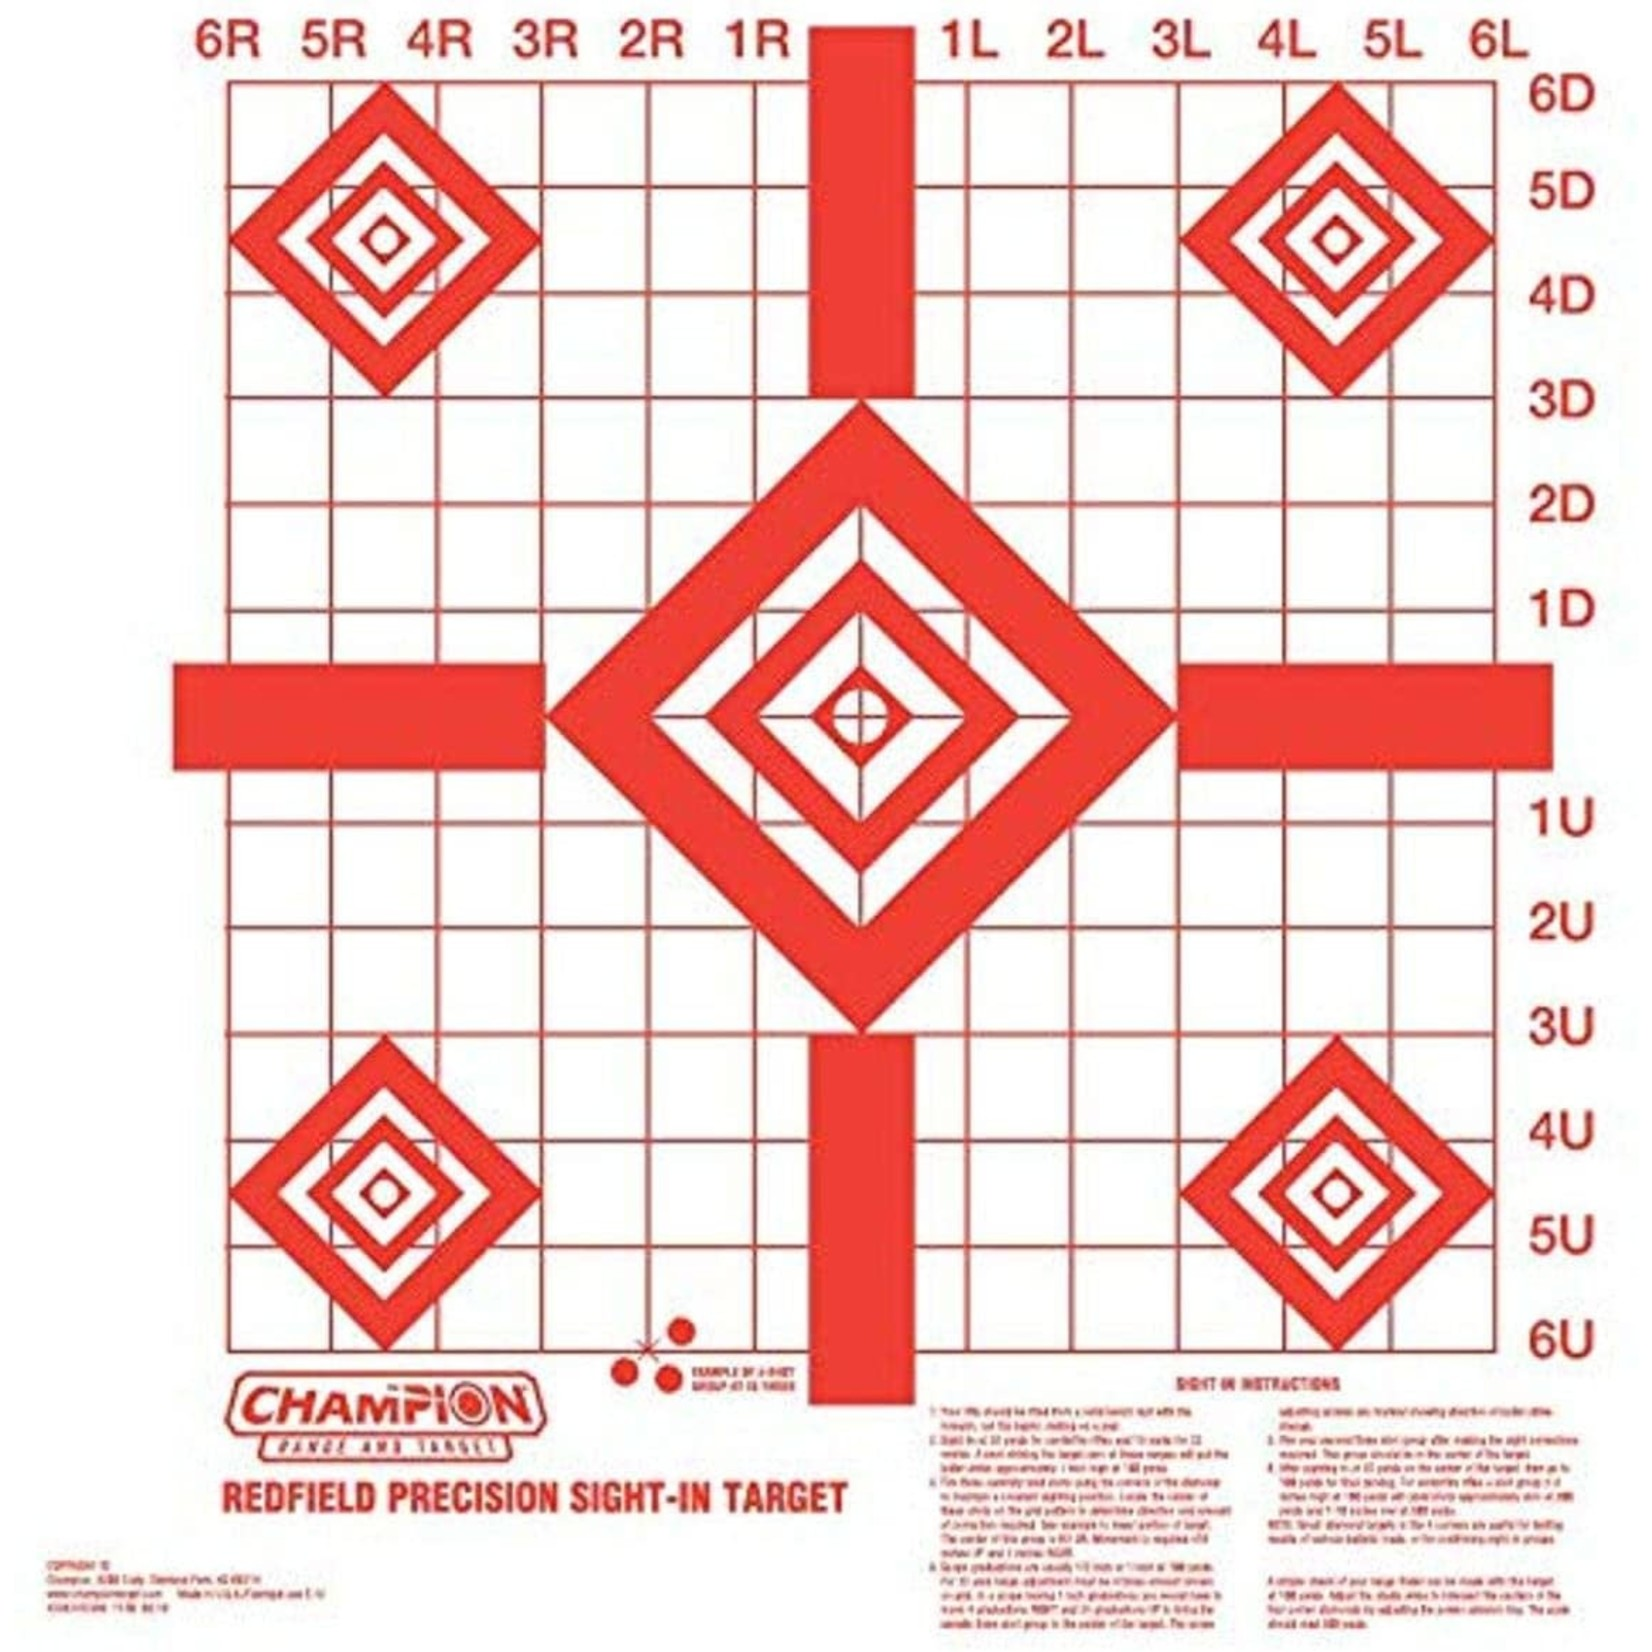 Champion Redfield Precision Sight-In Target